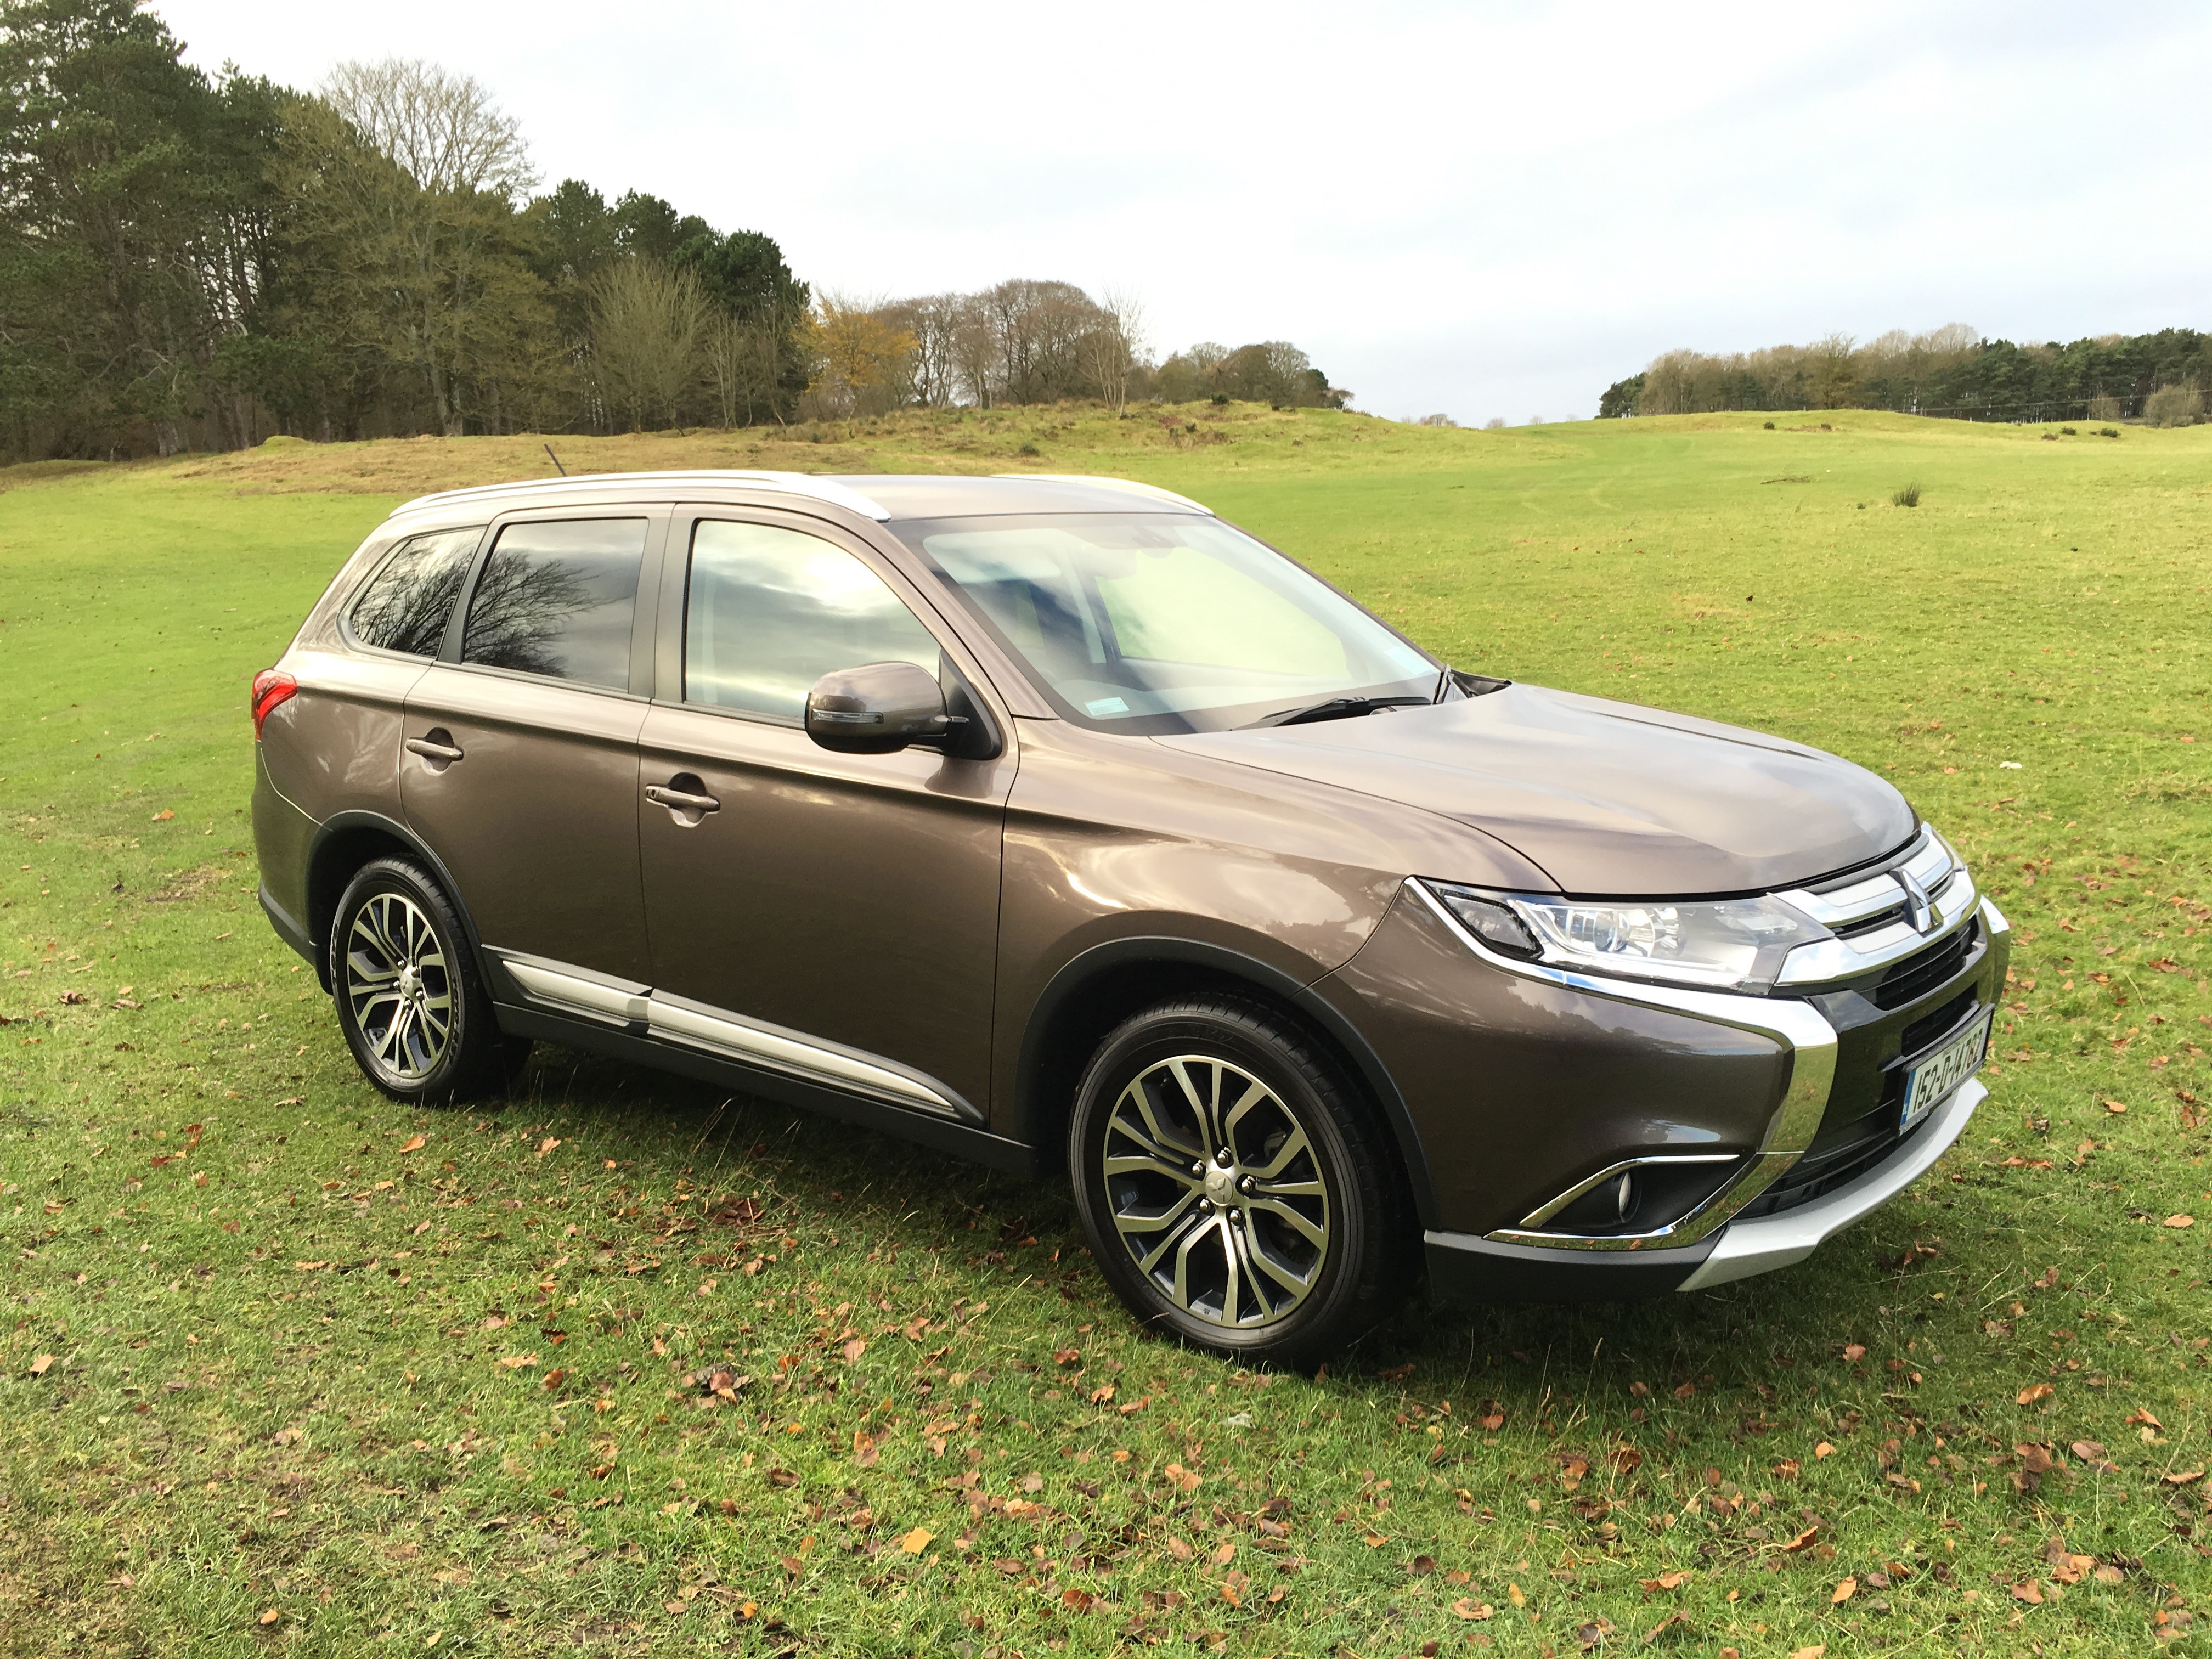 reviewed: mitsubishi outlander 2.2 did instyle - fleetcar.ie